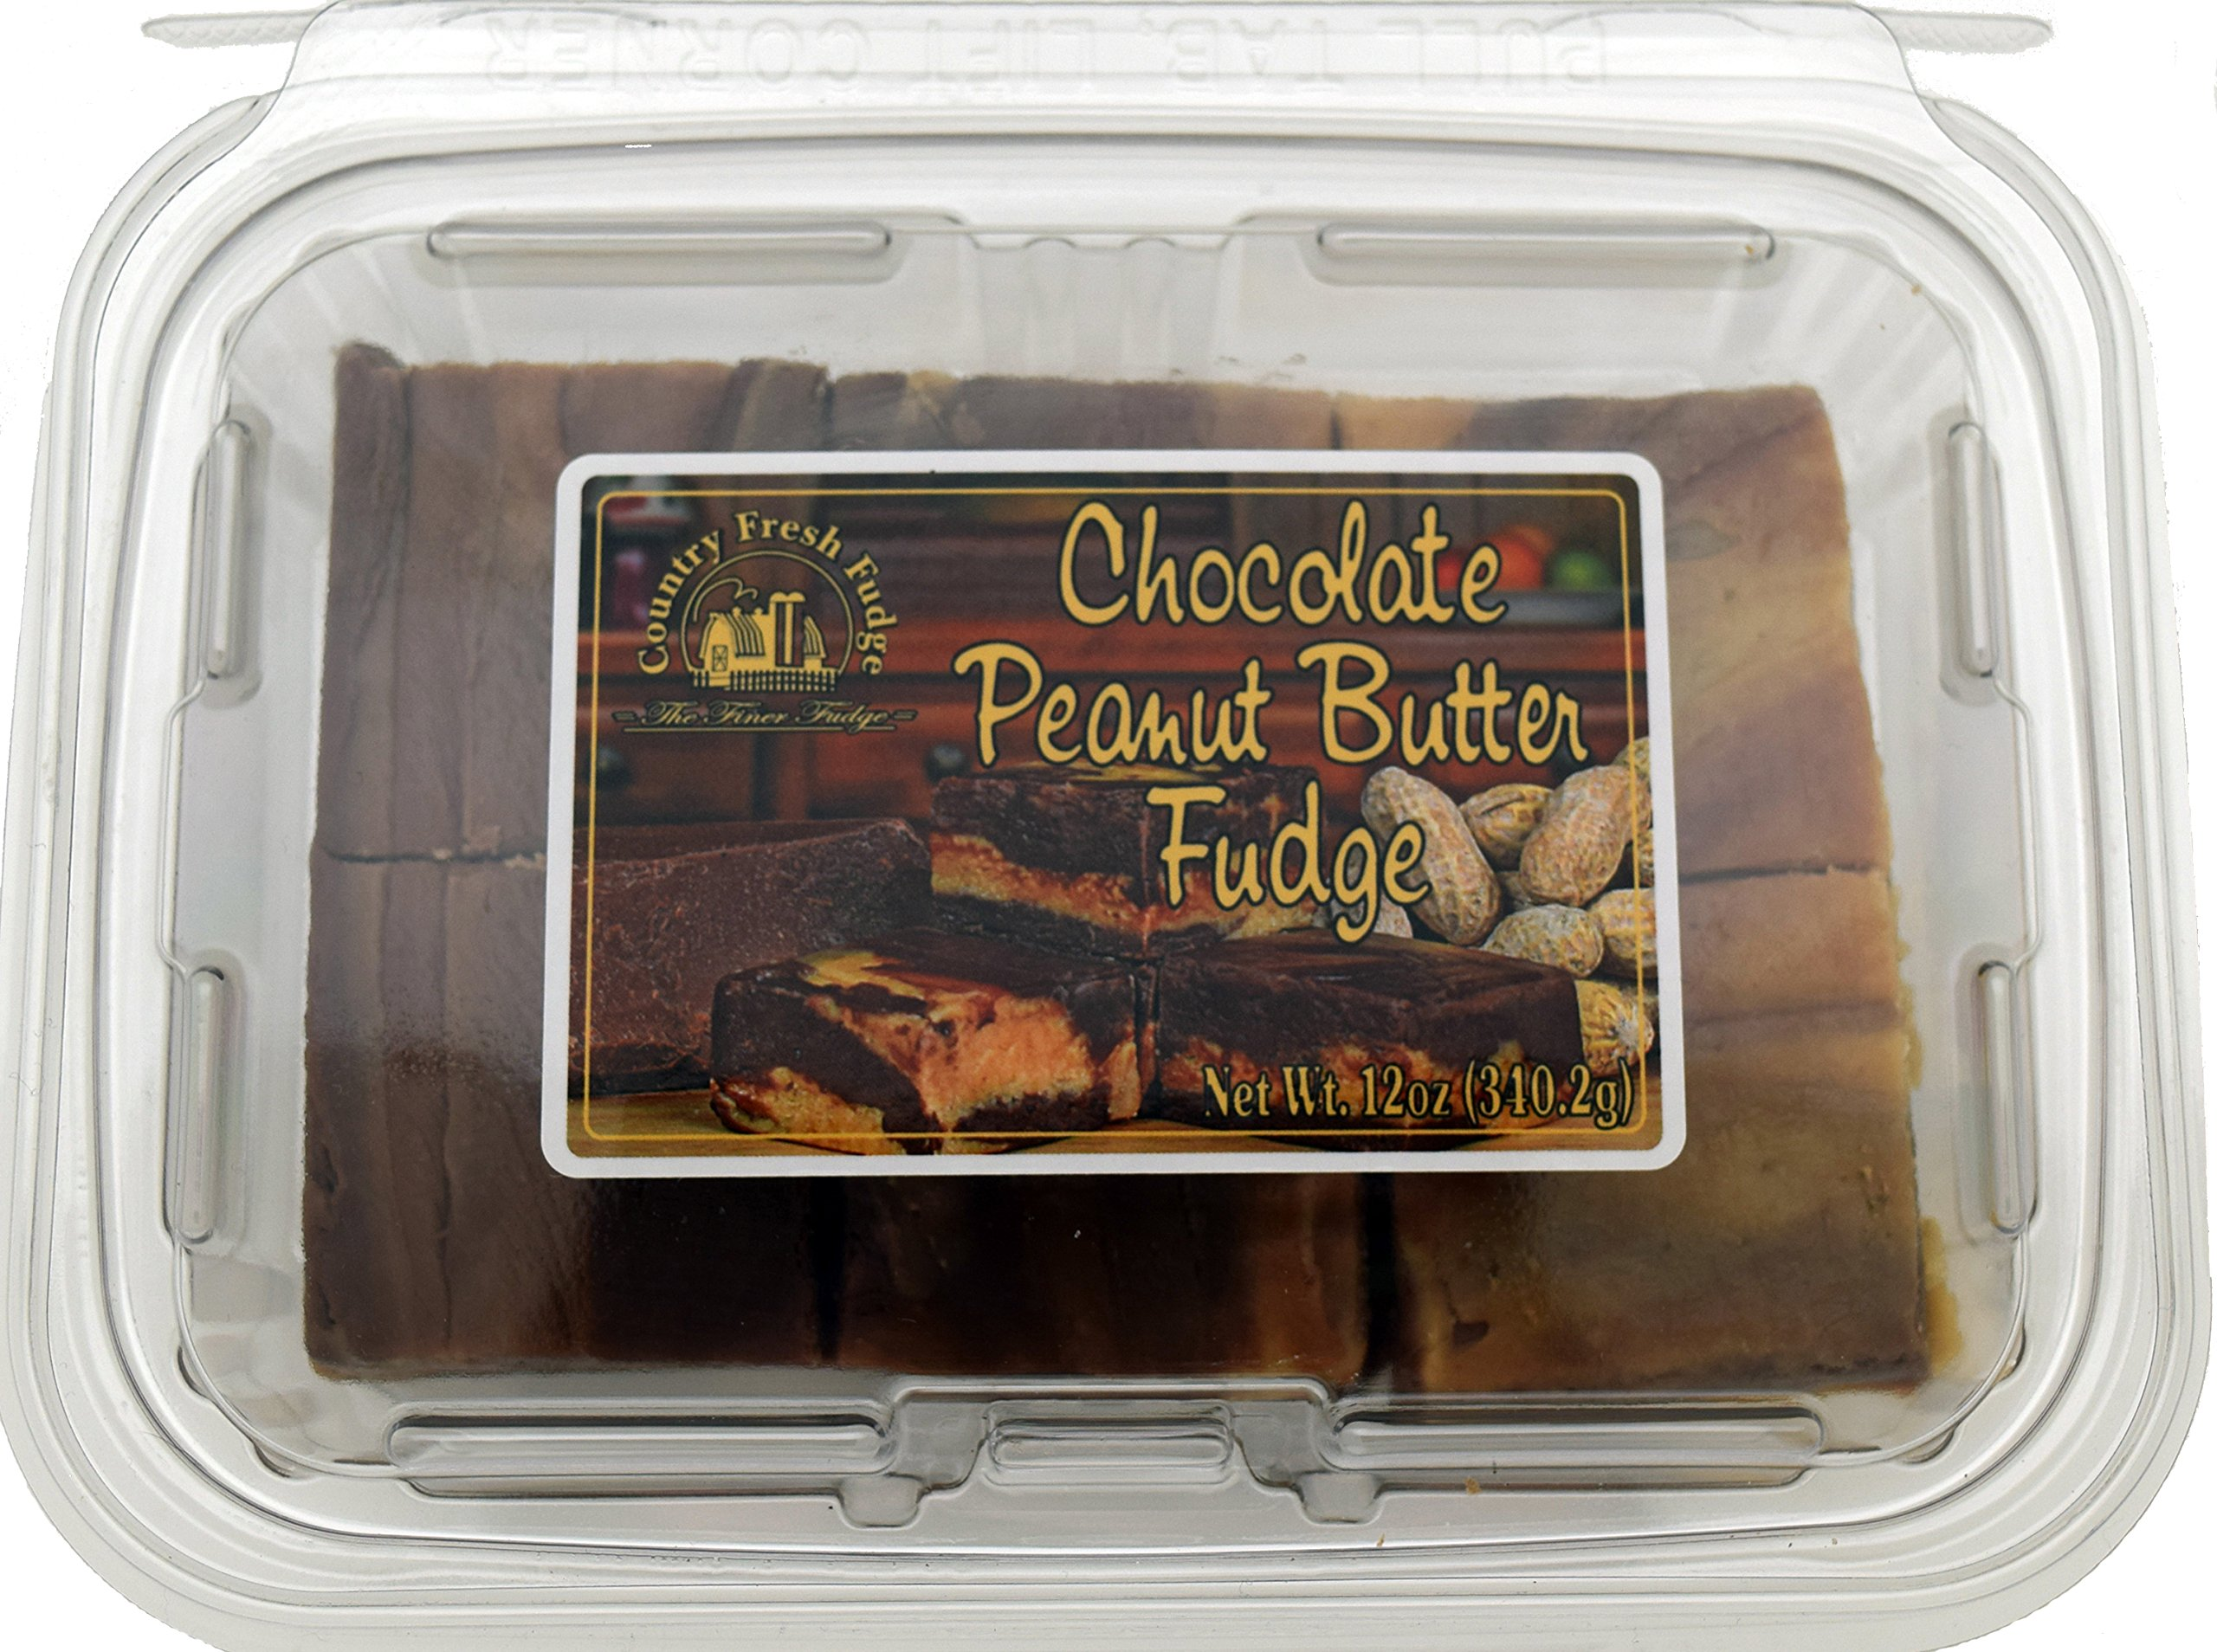 Country Fresh Fudge Chocolate Peanut Butter, 6 Pound (Pack of 8) by Country Fresh Fudge